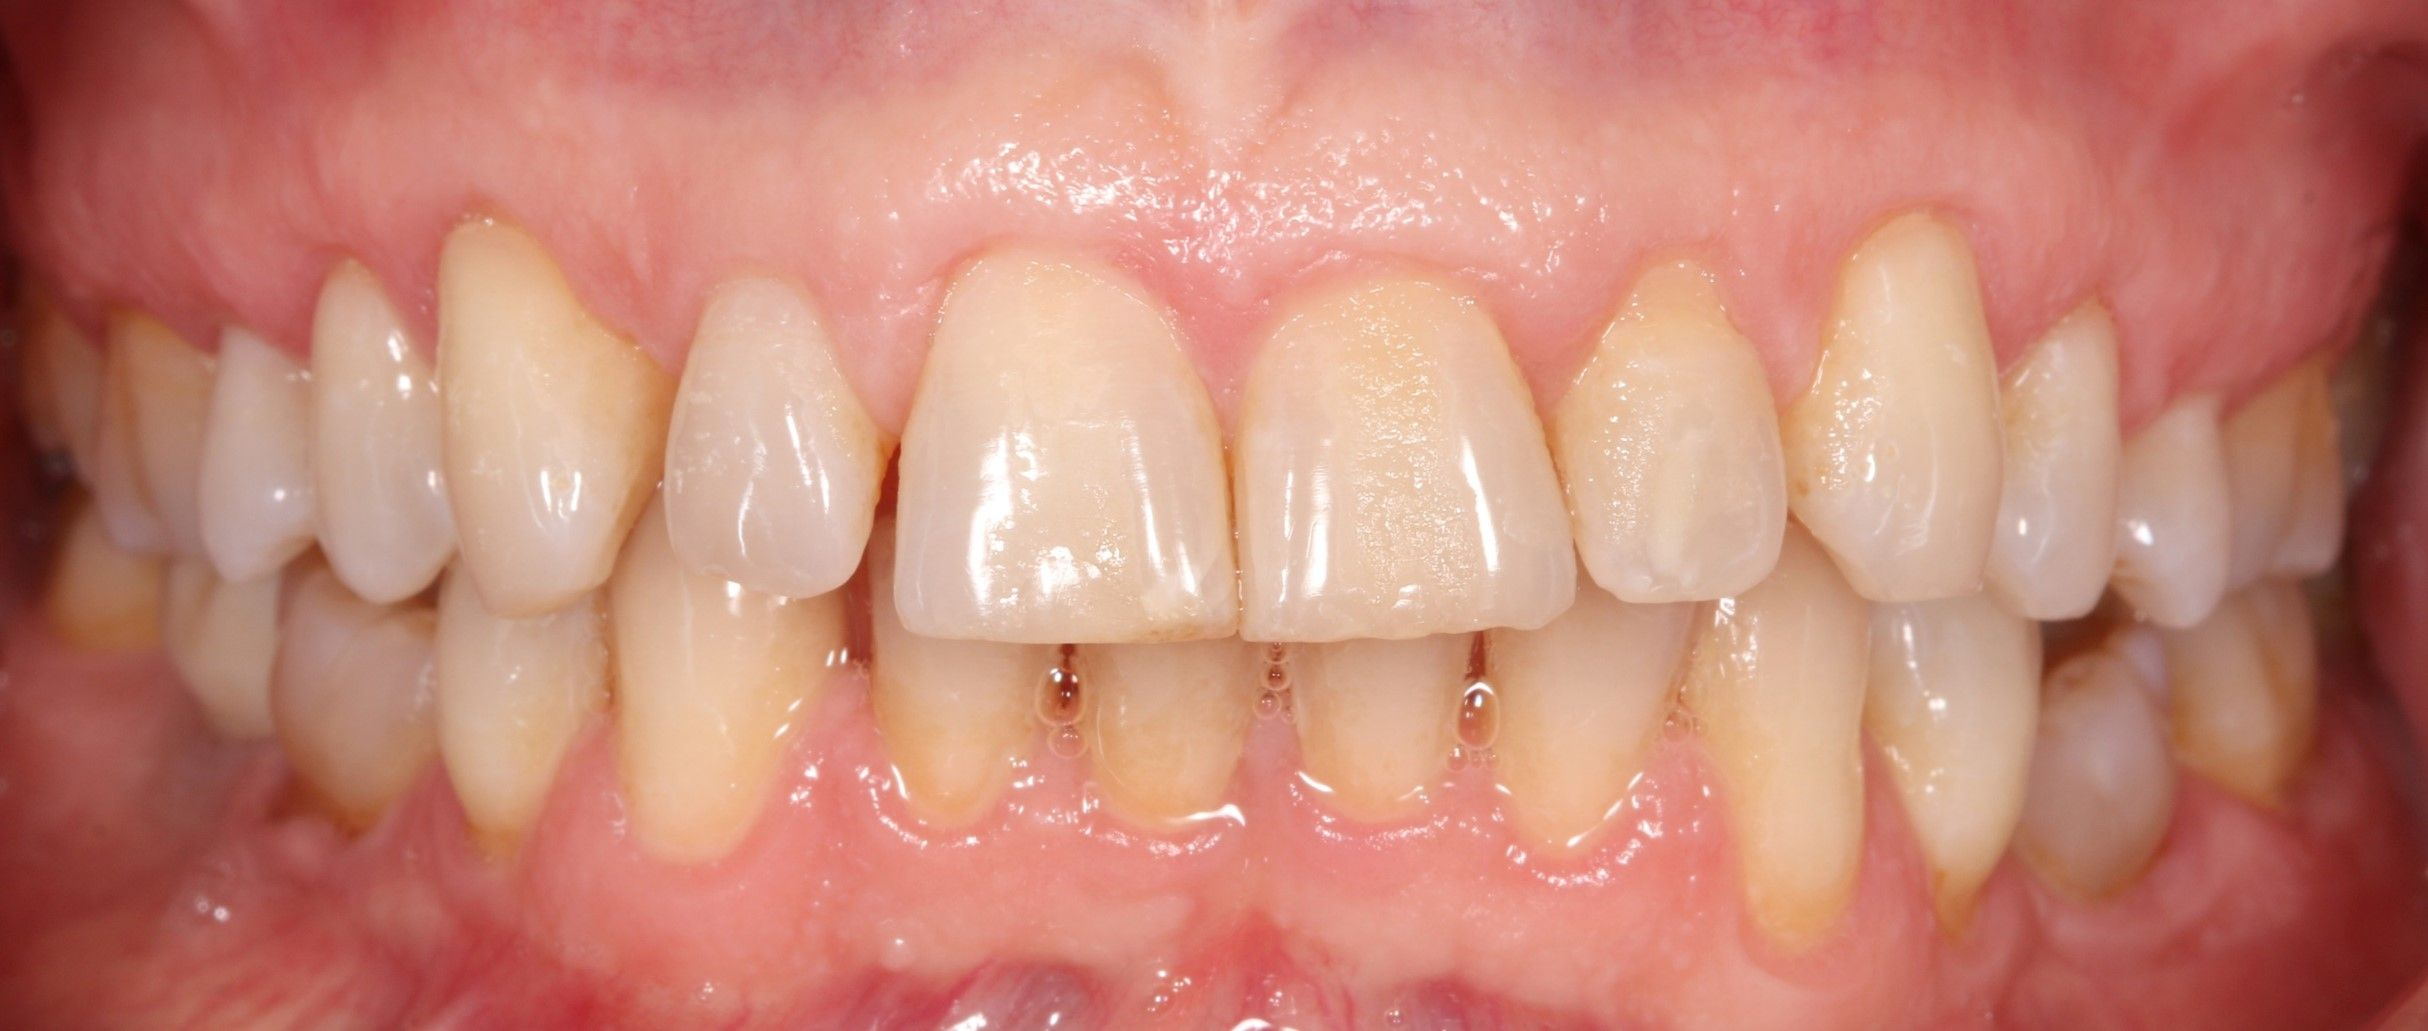 After treatment of receding gums using the Pinhole technique